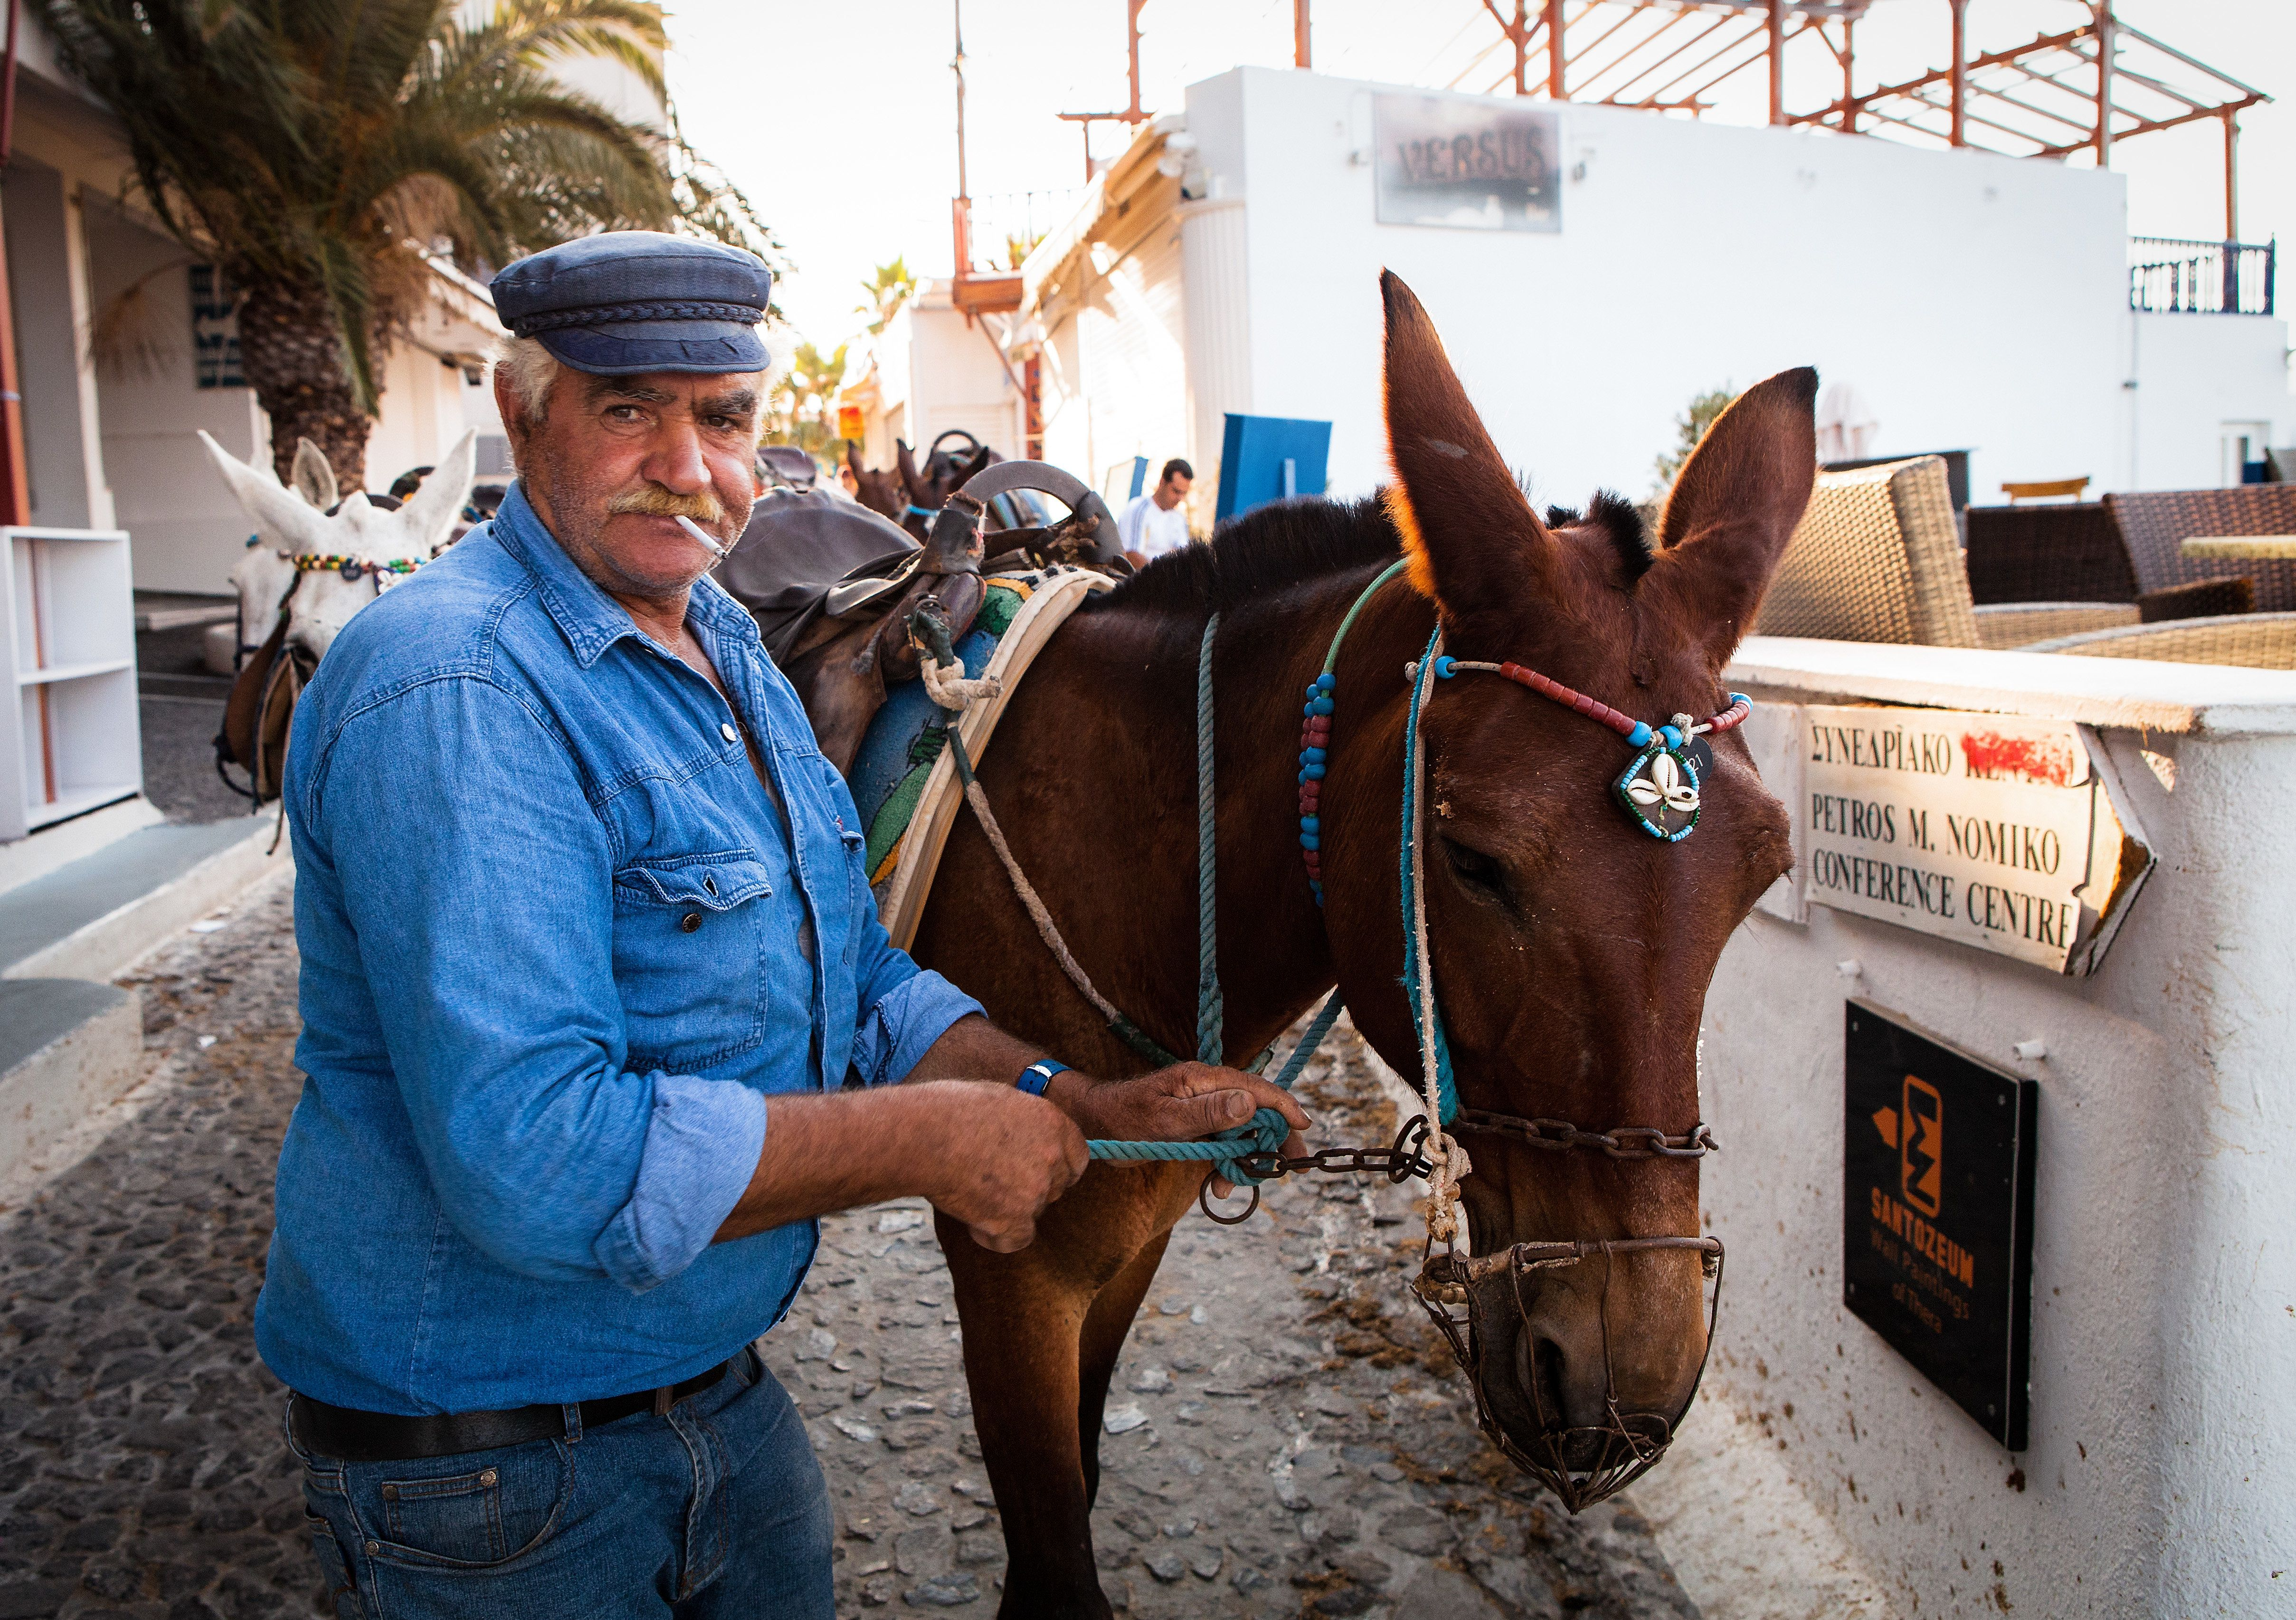 In Greece, banned fat tourists ride a donkey 90